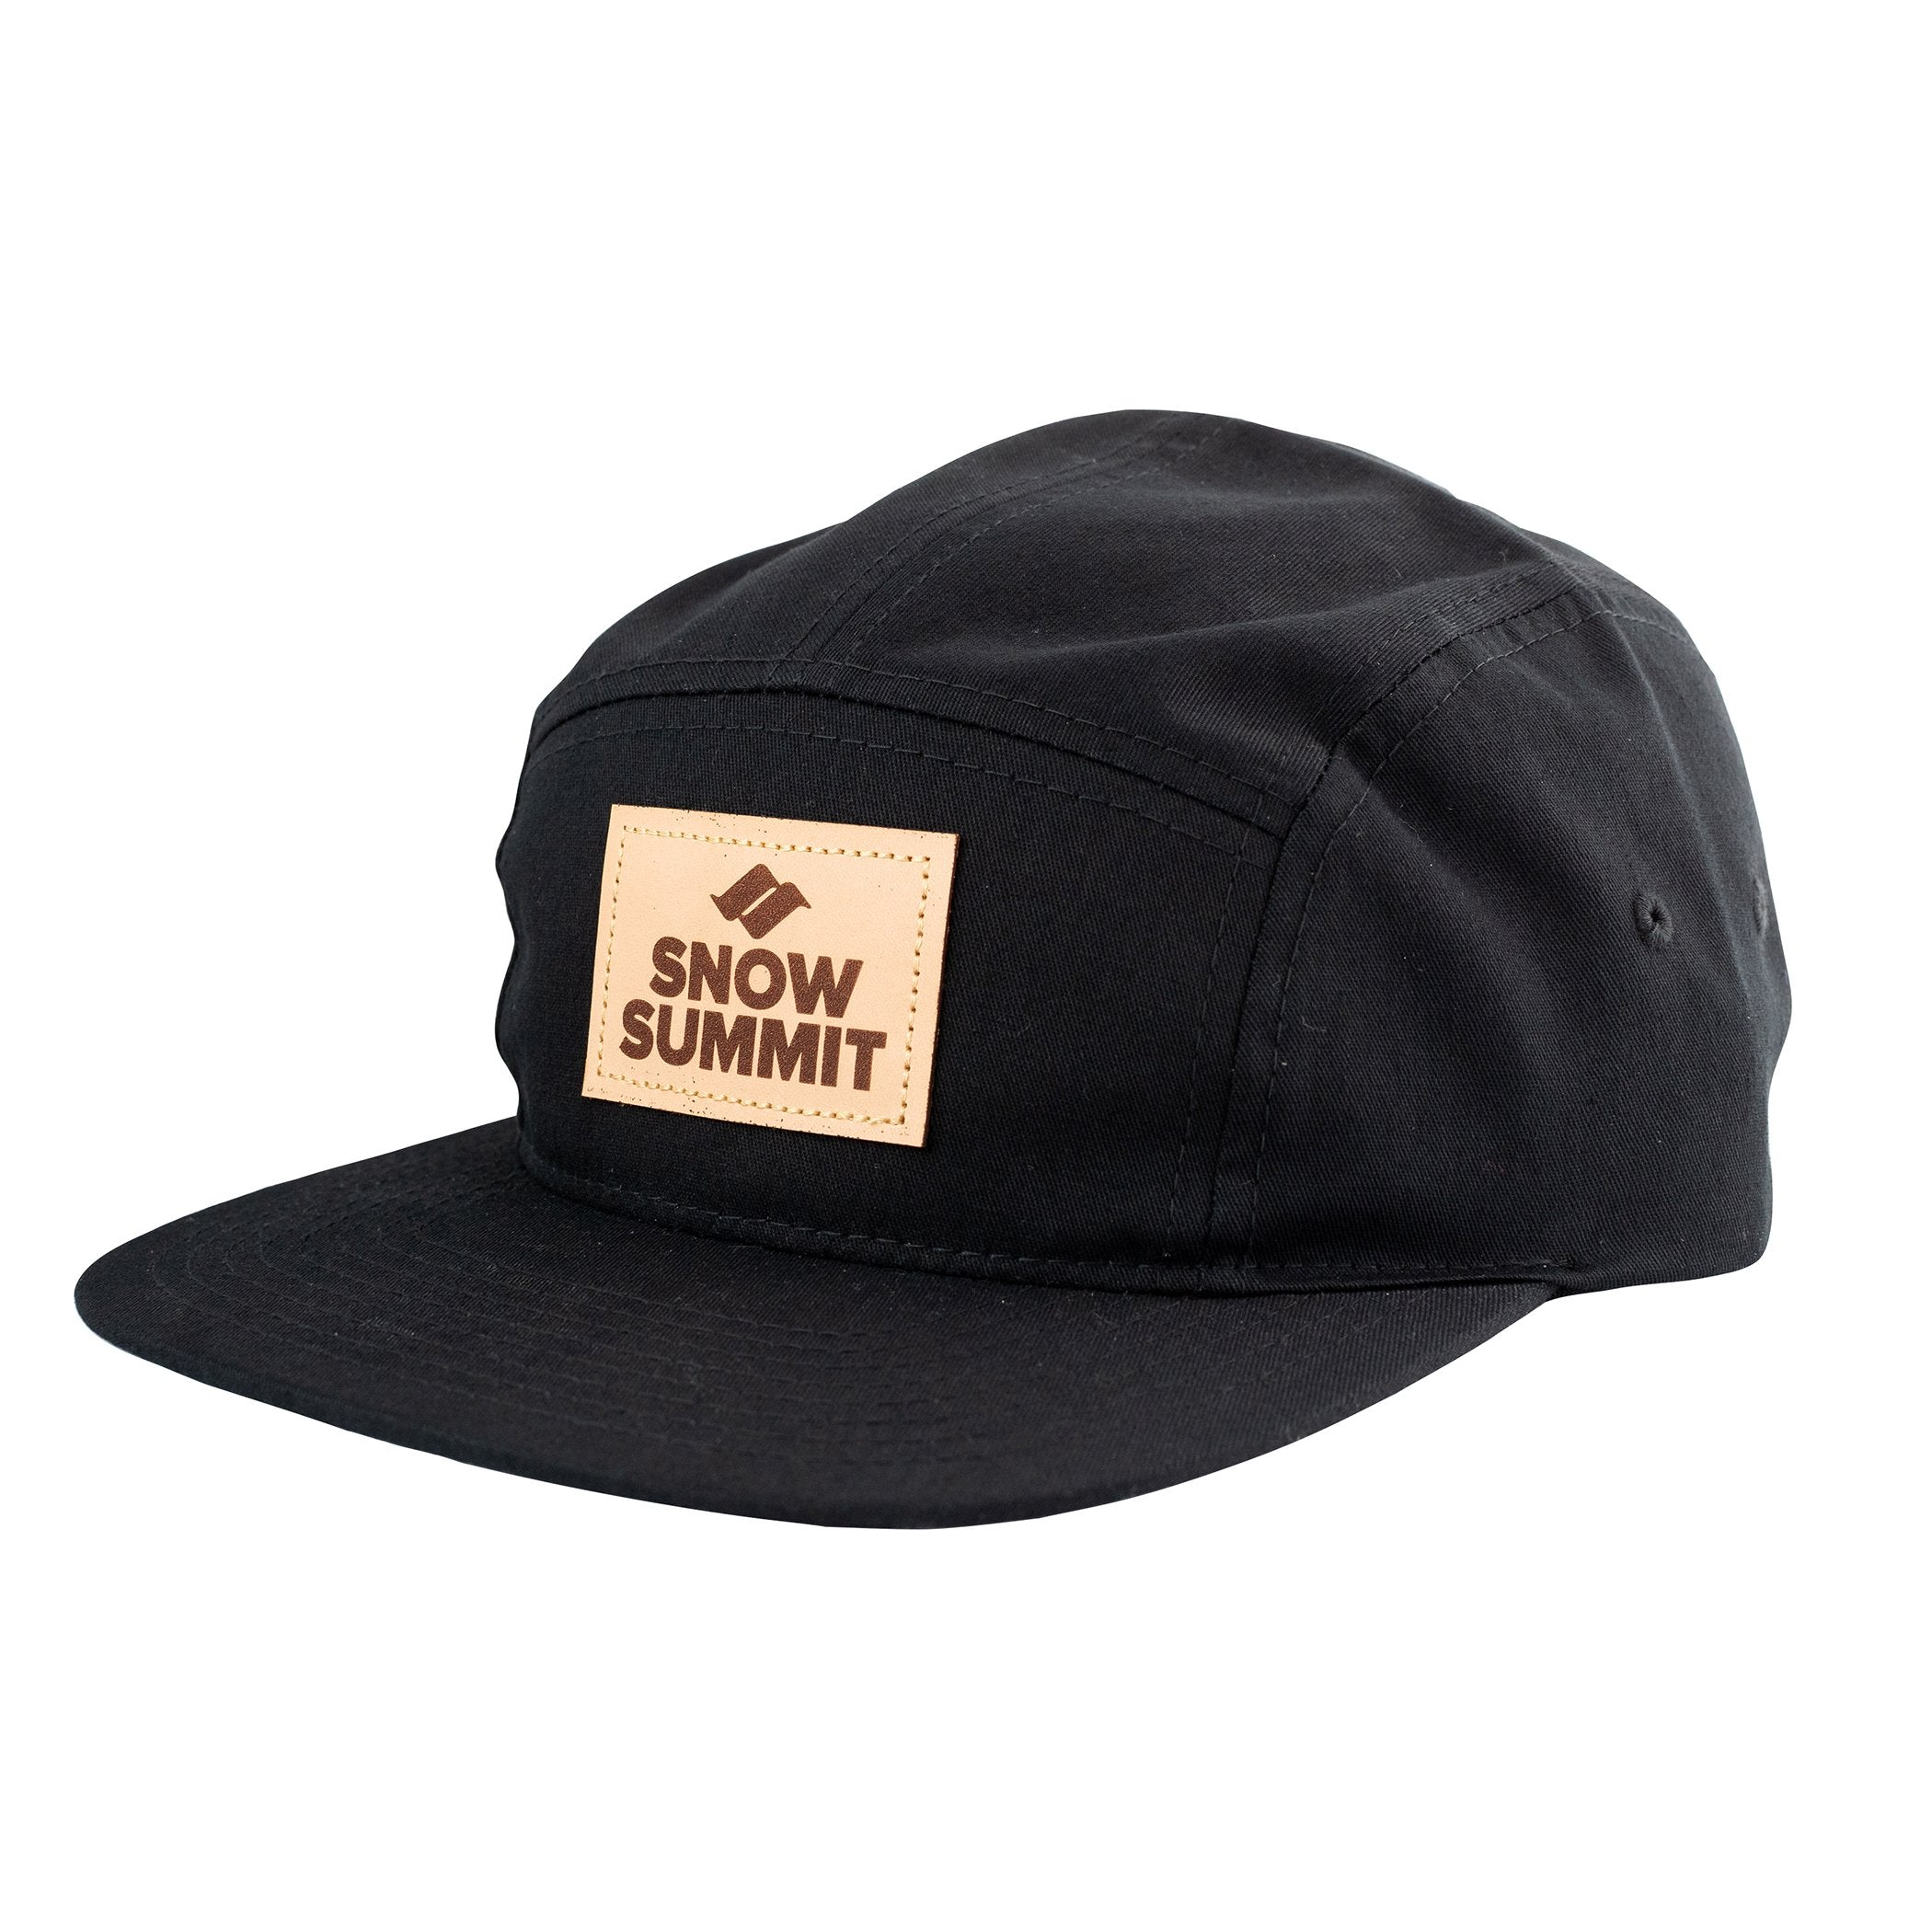 Black 5 Panel Cap with Snow Summit Leather Patch Logo